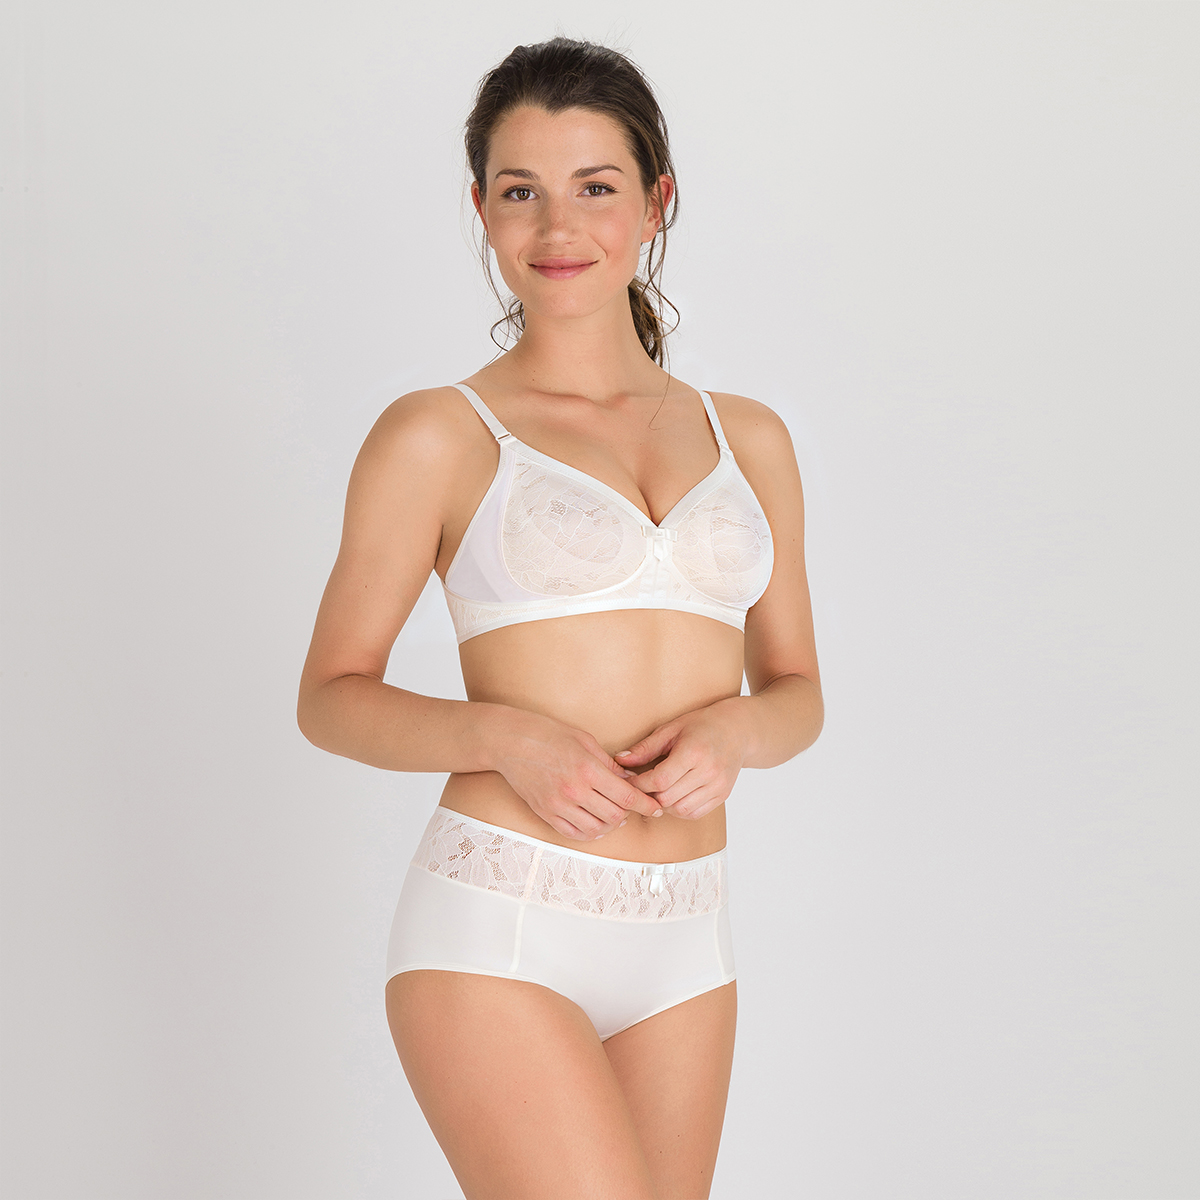 Soutien-gorge sans armatures ivoire - Ideal Beauty Lace, , PLAYTEX